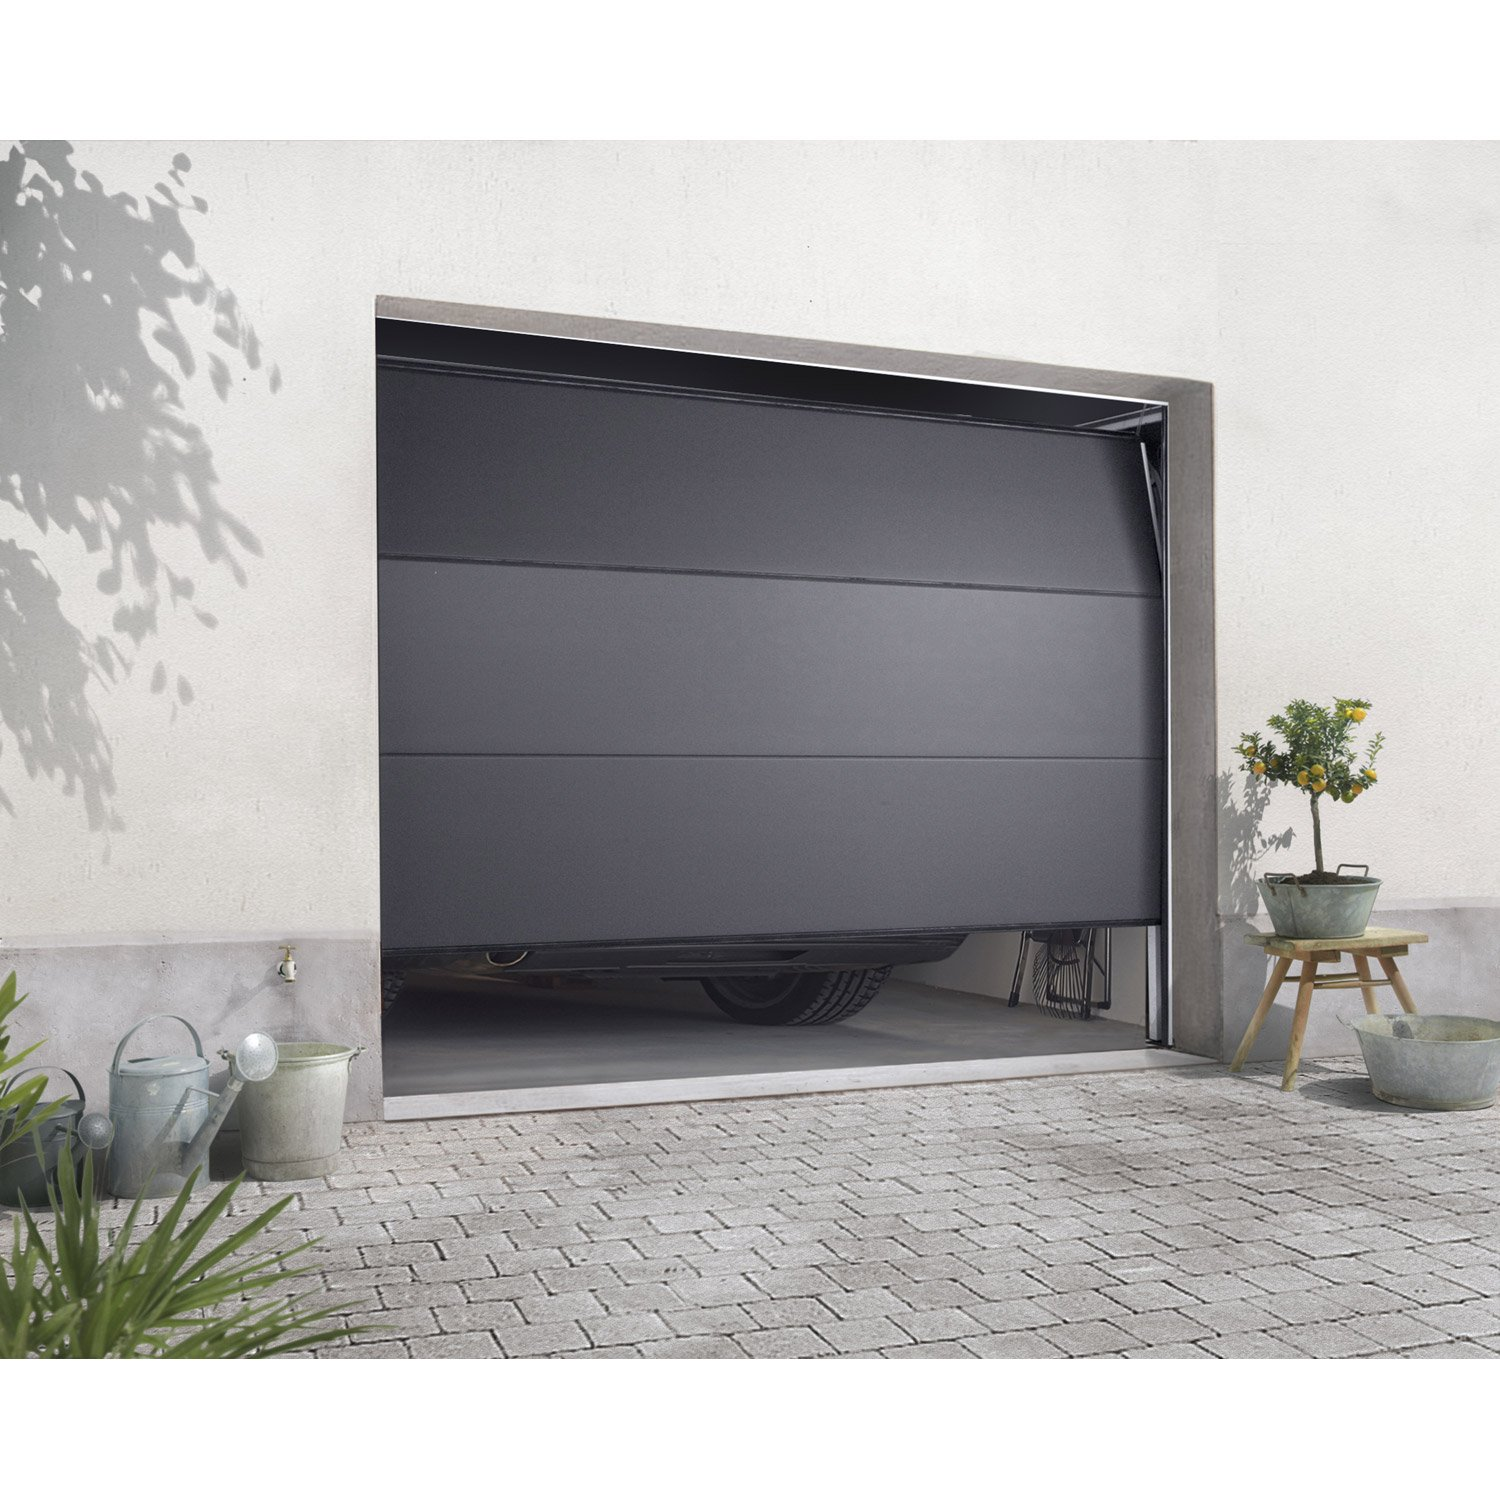 Porte de garage sectionnelle 300 x 215 isolation id es - Porte de garage sectionnelle 300 x 200 ...